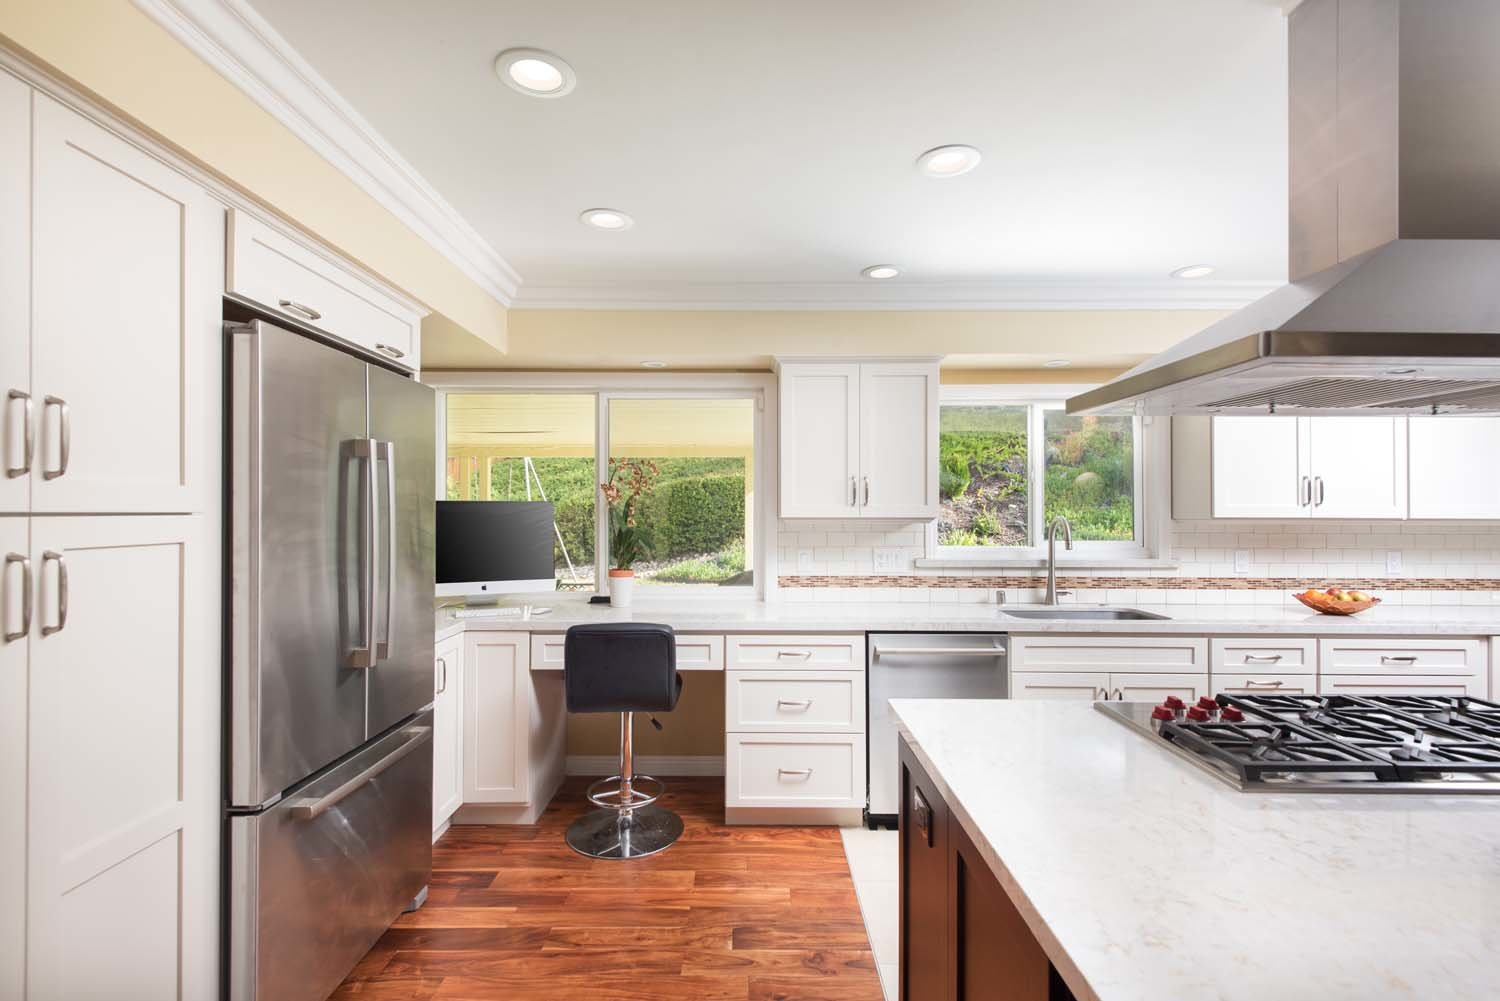 San Diego Kitchen Remodel - Classic Home Improvements